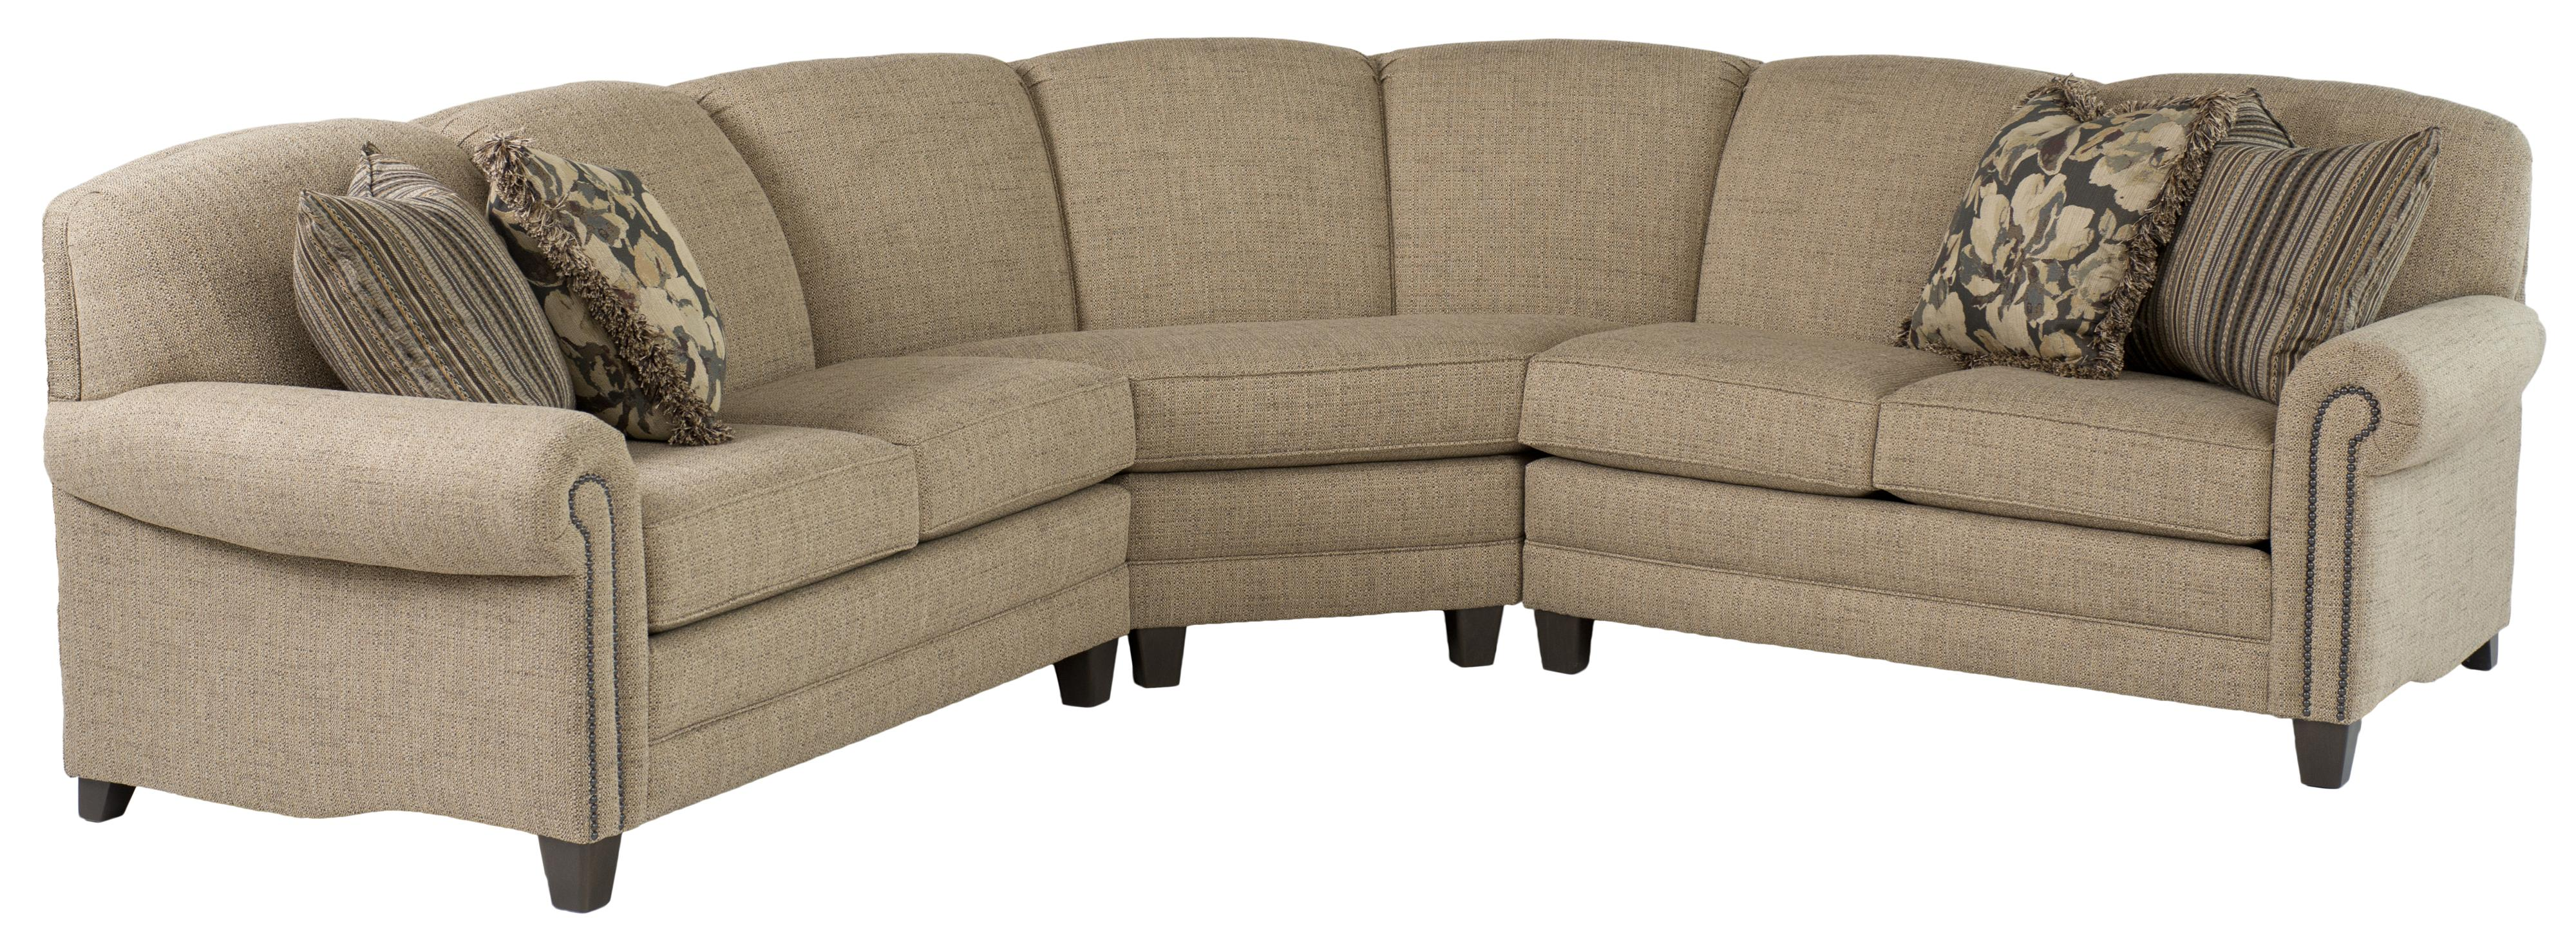 Smith Brothers 397 Stationary Sectional - Item Number: 397-24+53+25